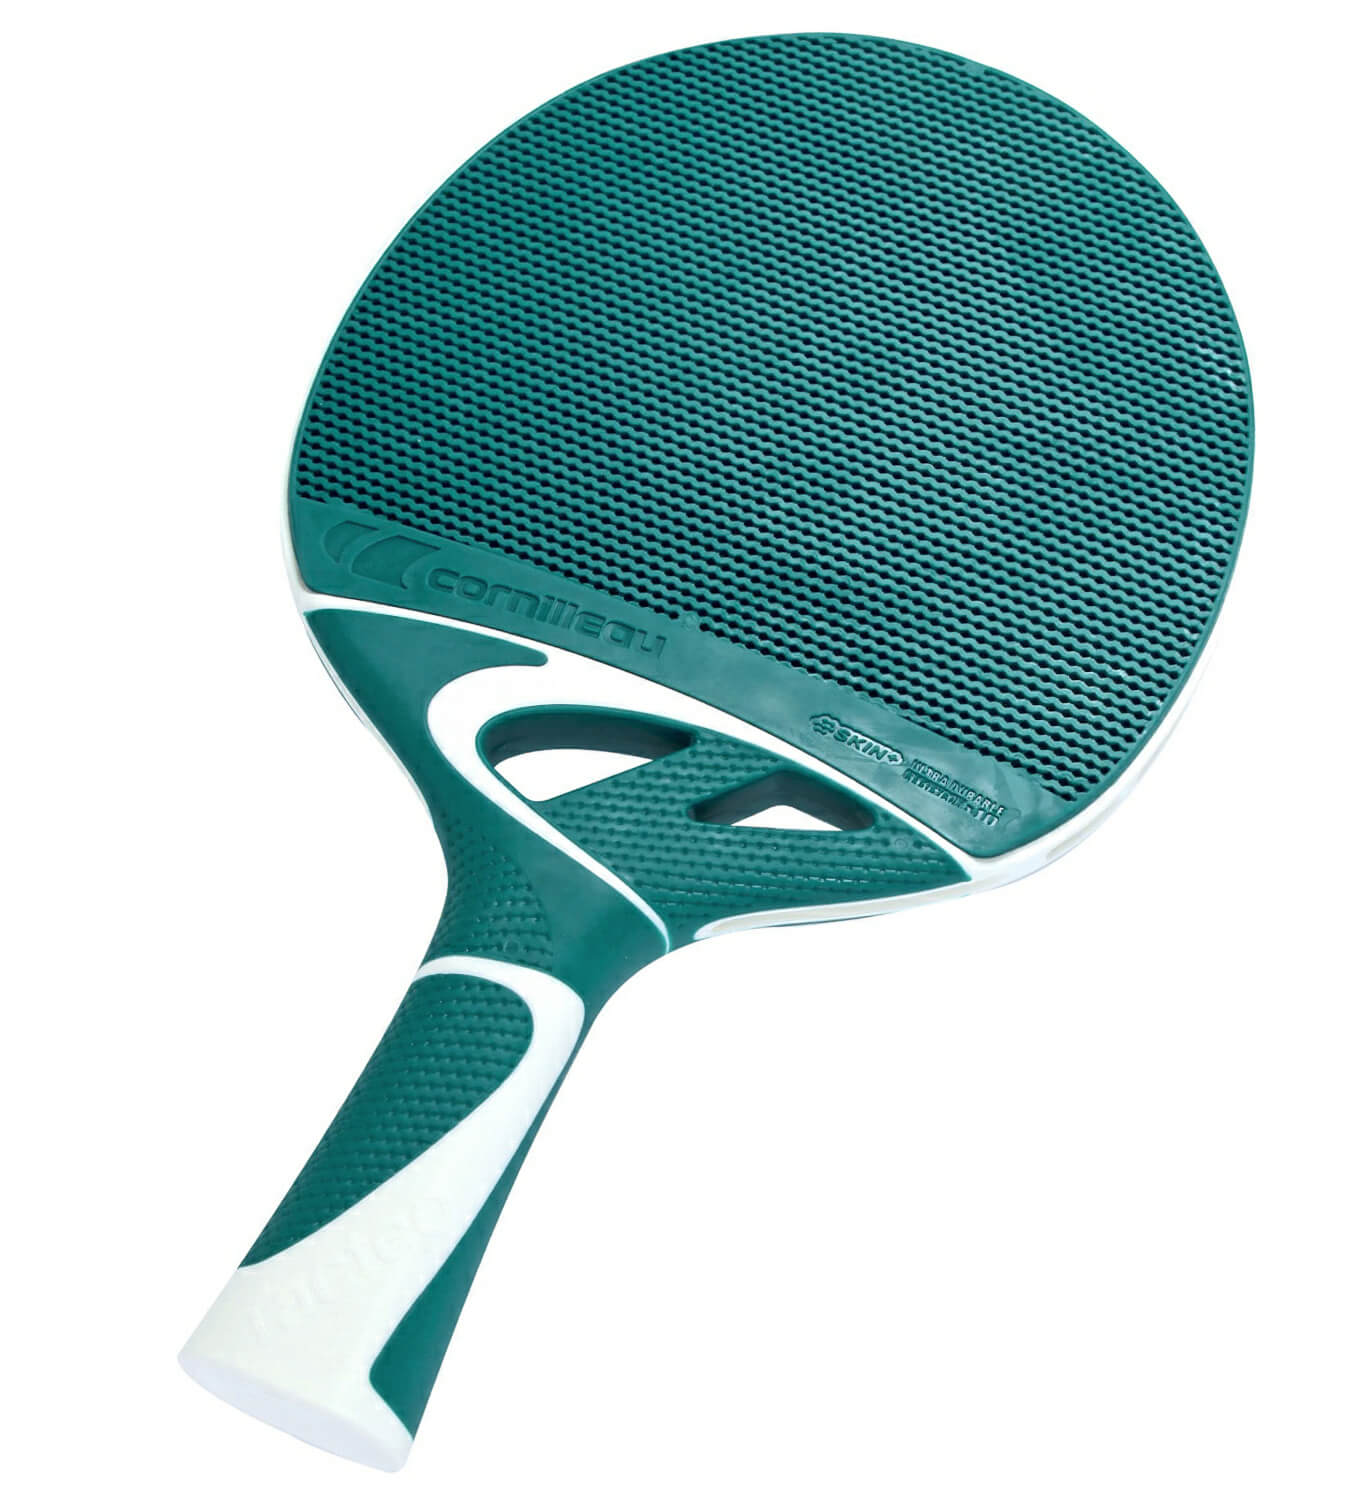 Cornilleau tacteo 50 turquoise table tennis bat 455405 - Cornilleau table tennis bats ...